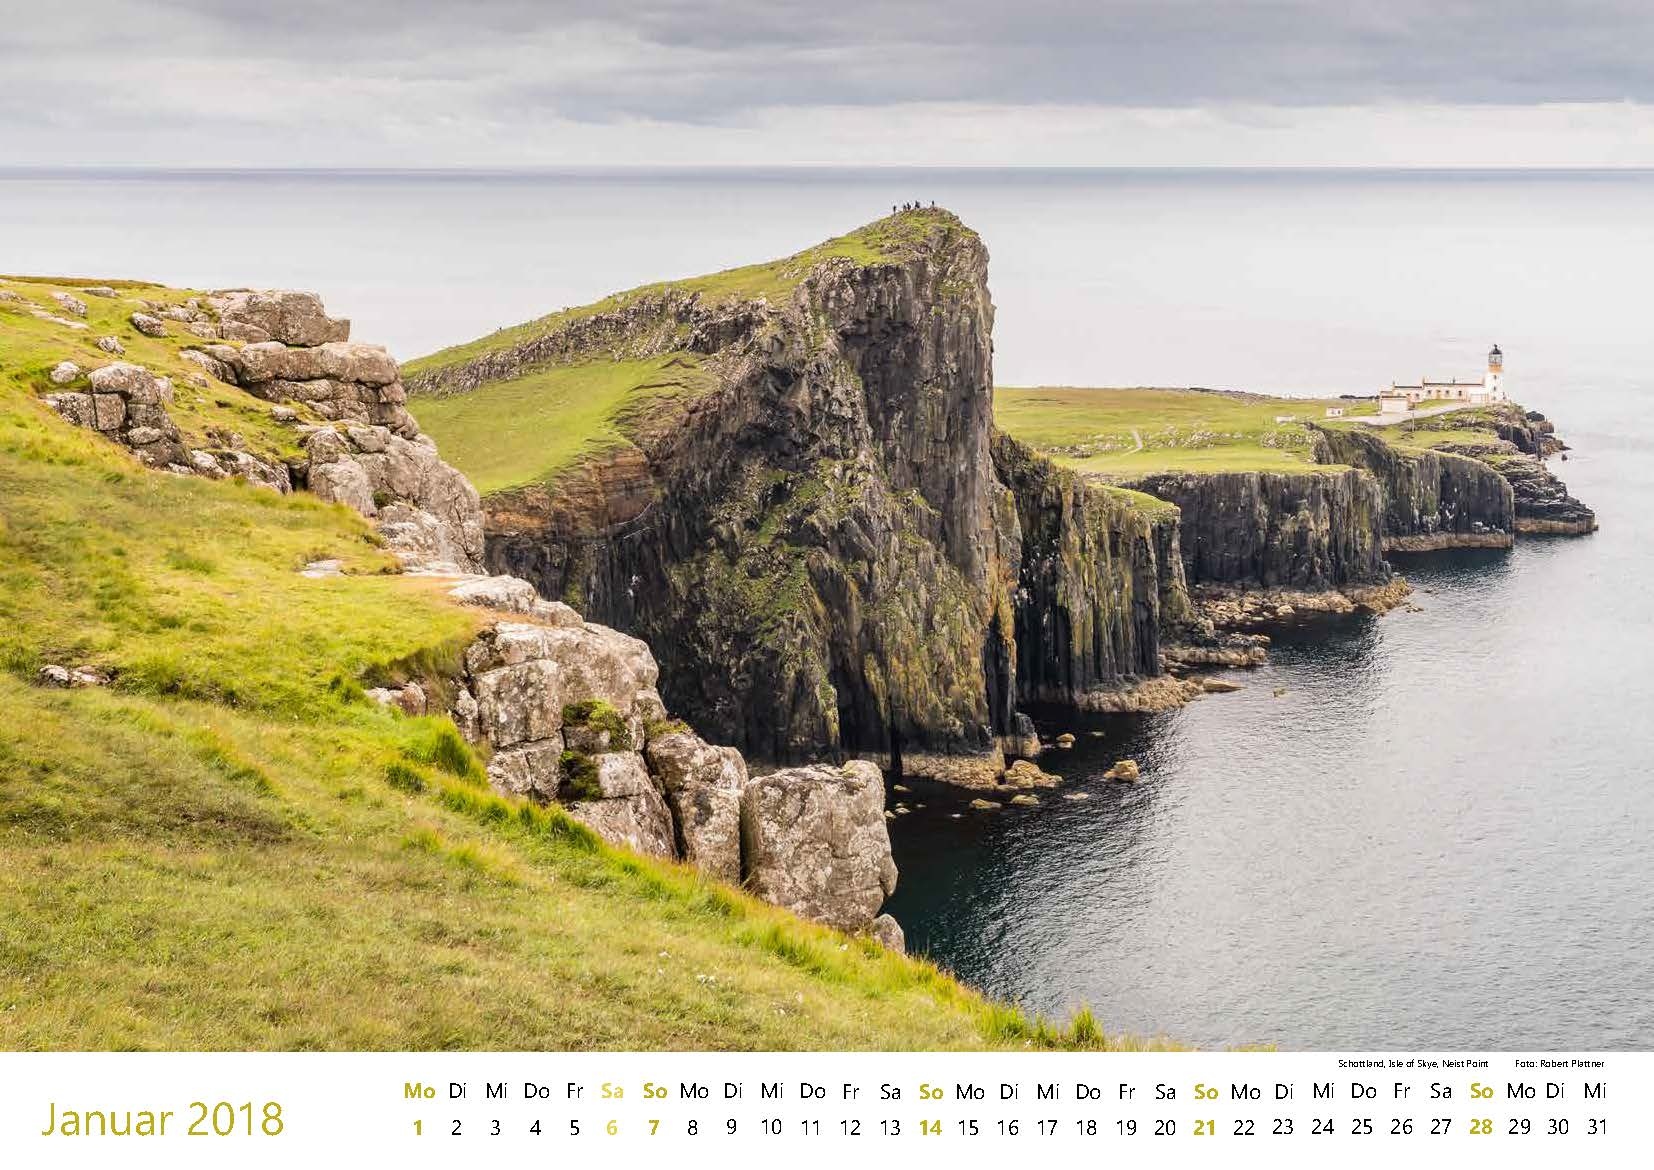 Schottland, Isle of Skye, Neist Point